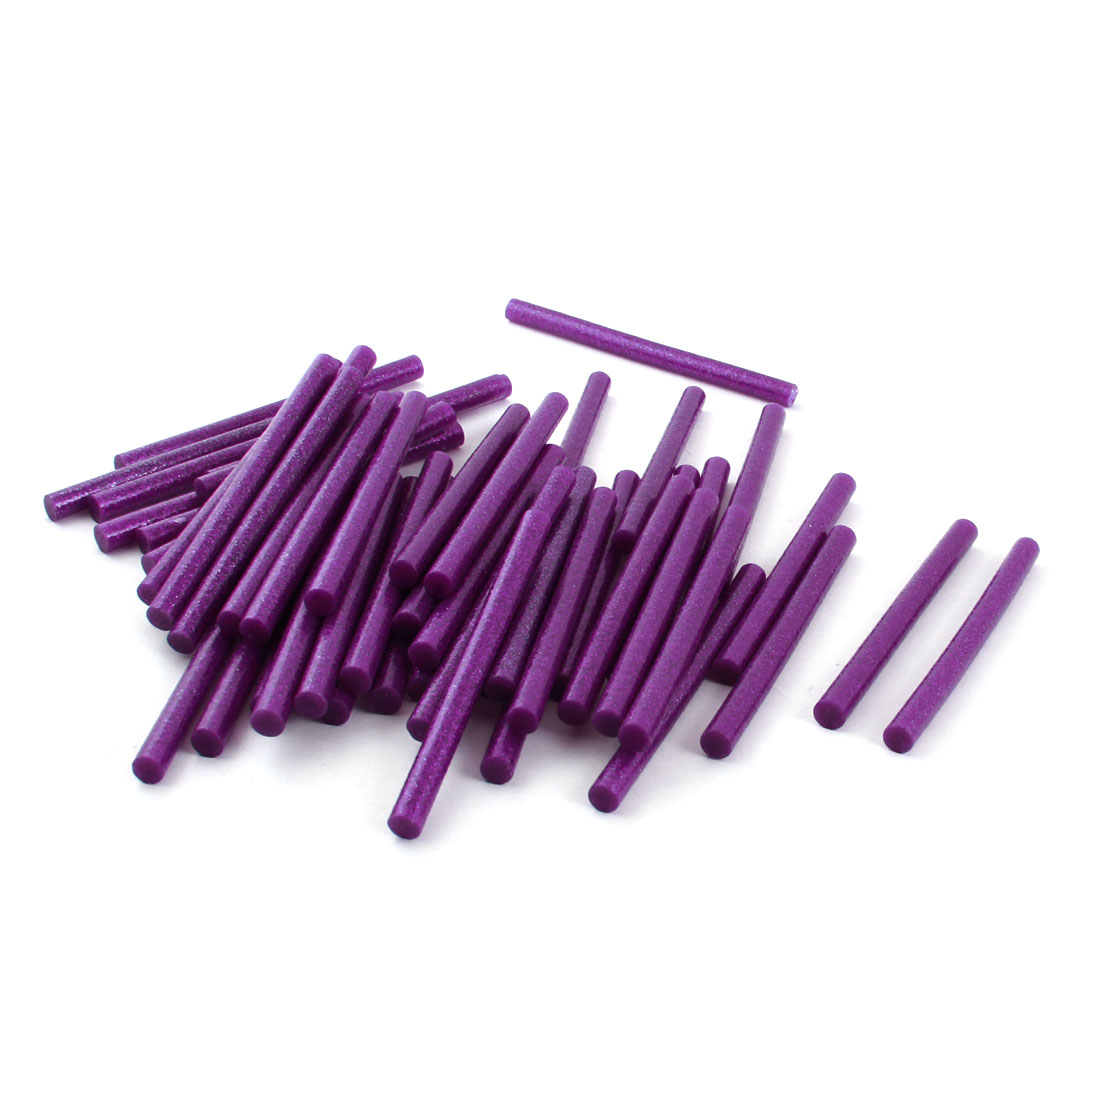 50Pcs 7mm x 100mm Purple Glitter Hot Melt Glue Adhesive Stick for Electric Tool Heating Gun